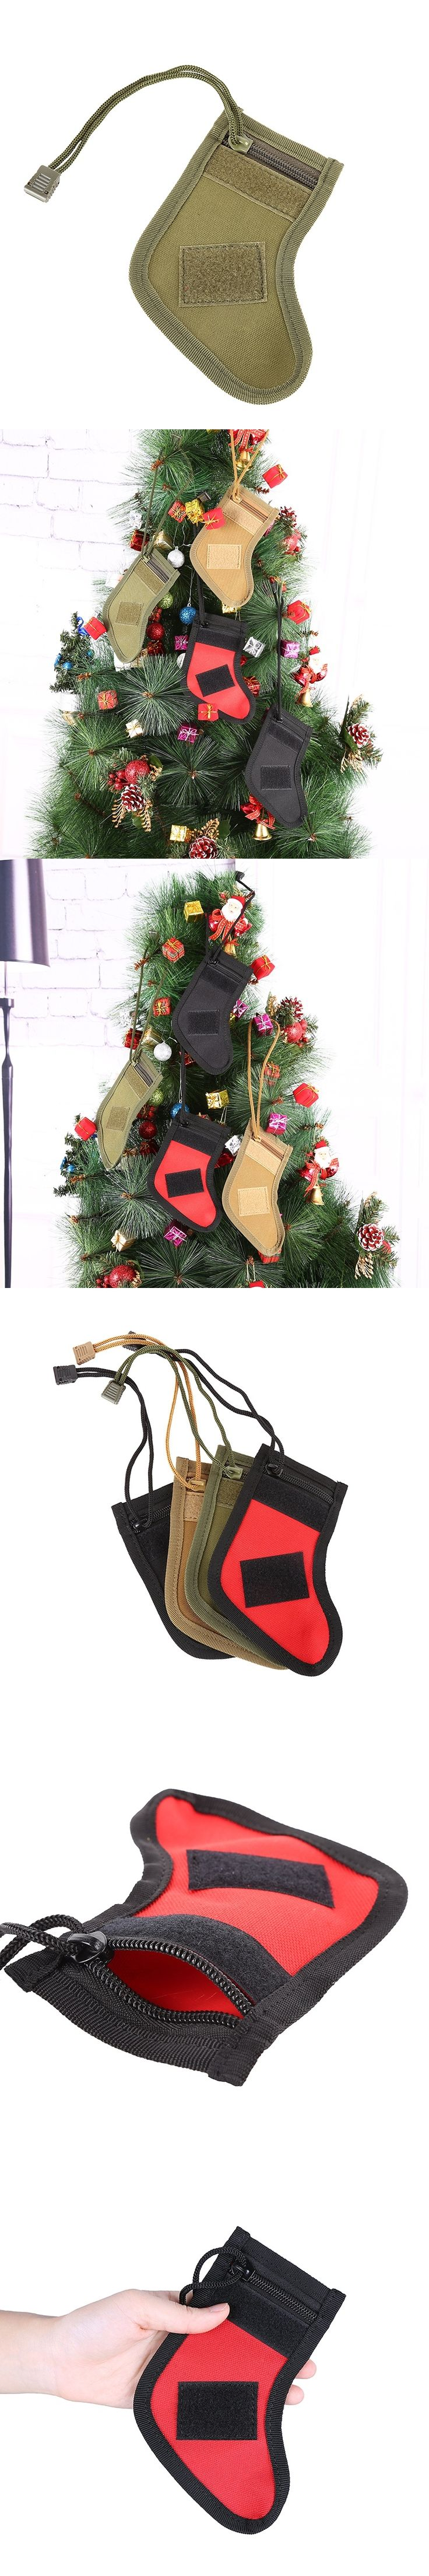 MOLLE Straps Tactical Stocking Dump Drop Pouch Military Hunting Magazine Pouches Christmas Storage Bag Newest